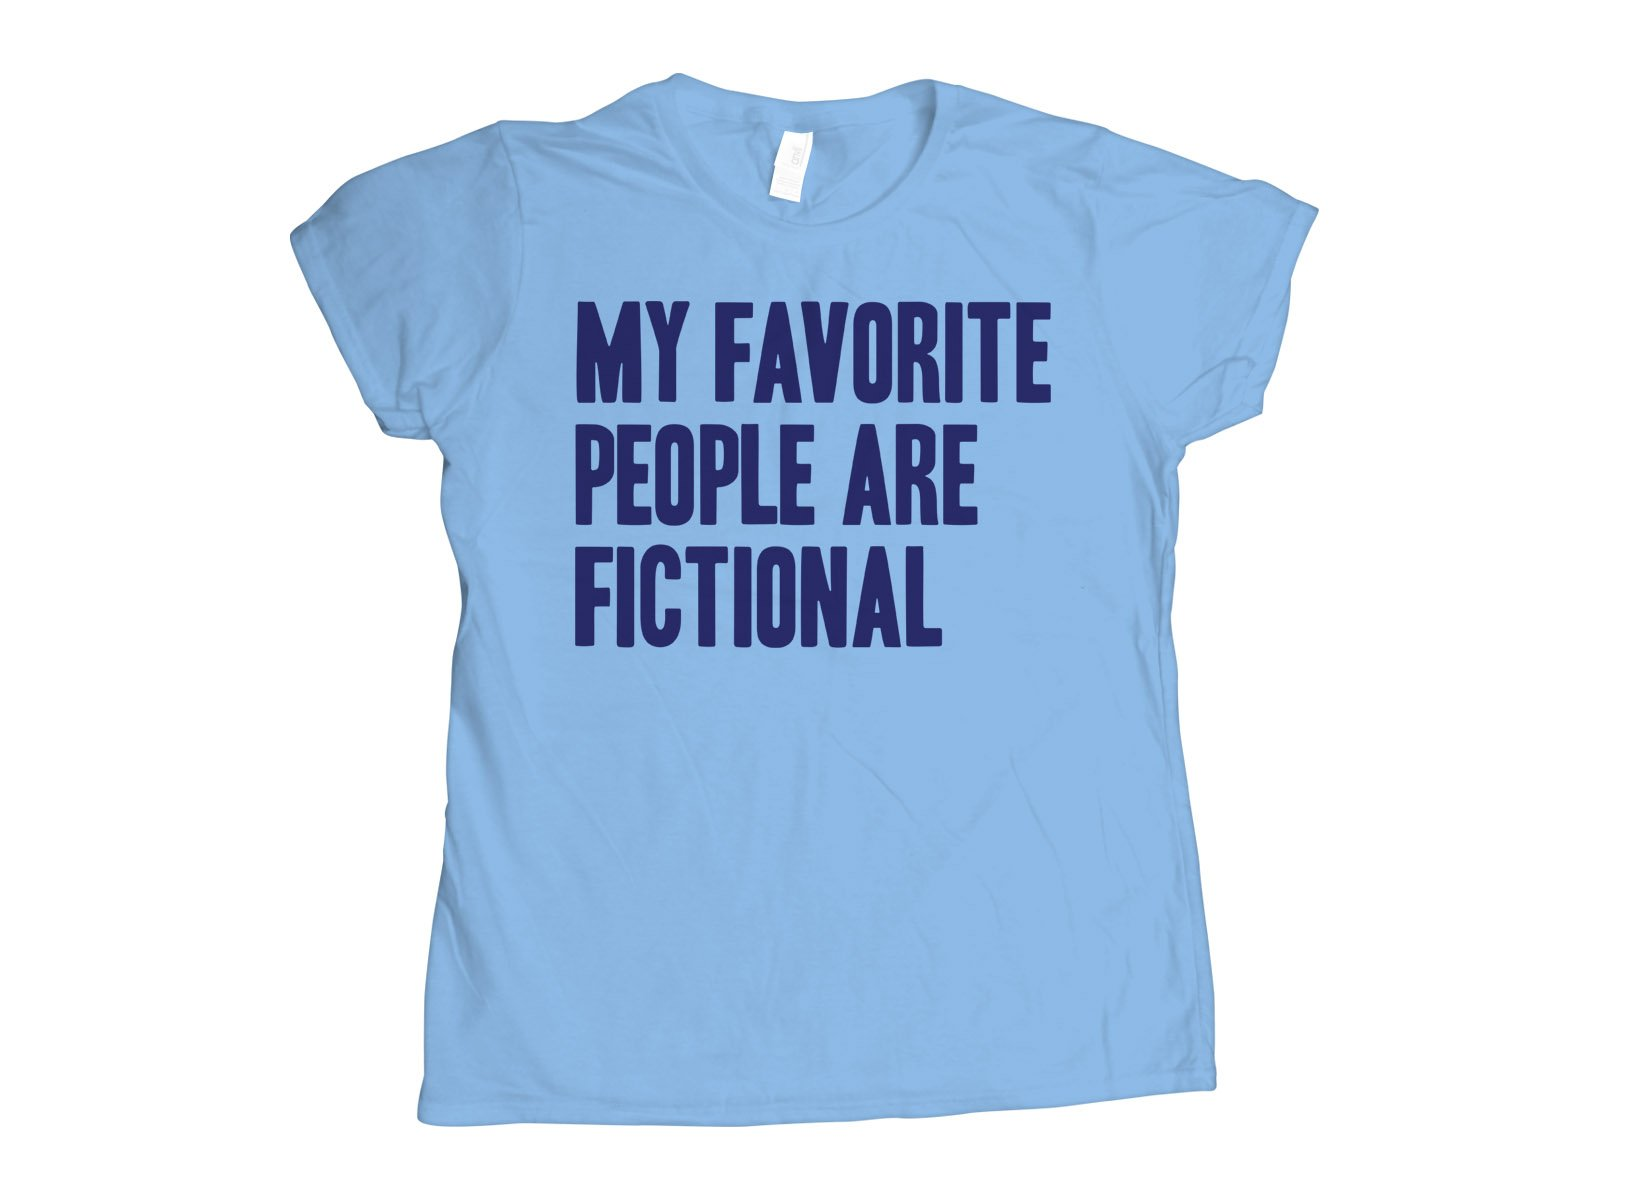 My Favorite People Are Fictional on Womens T-Shirt